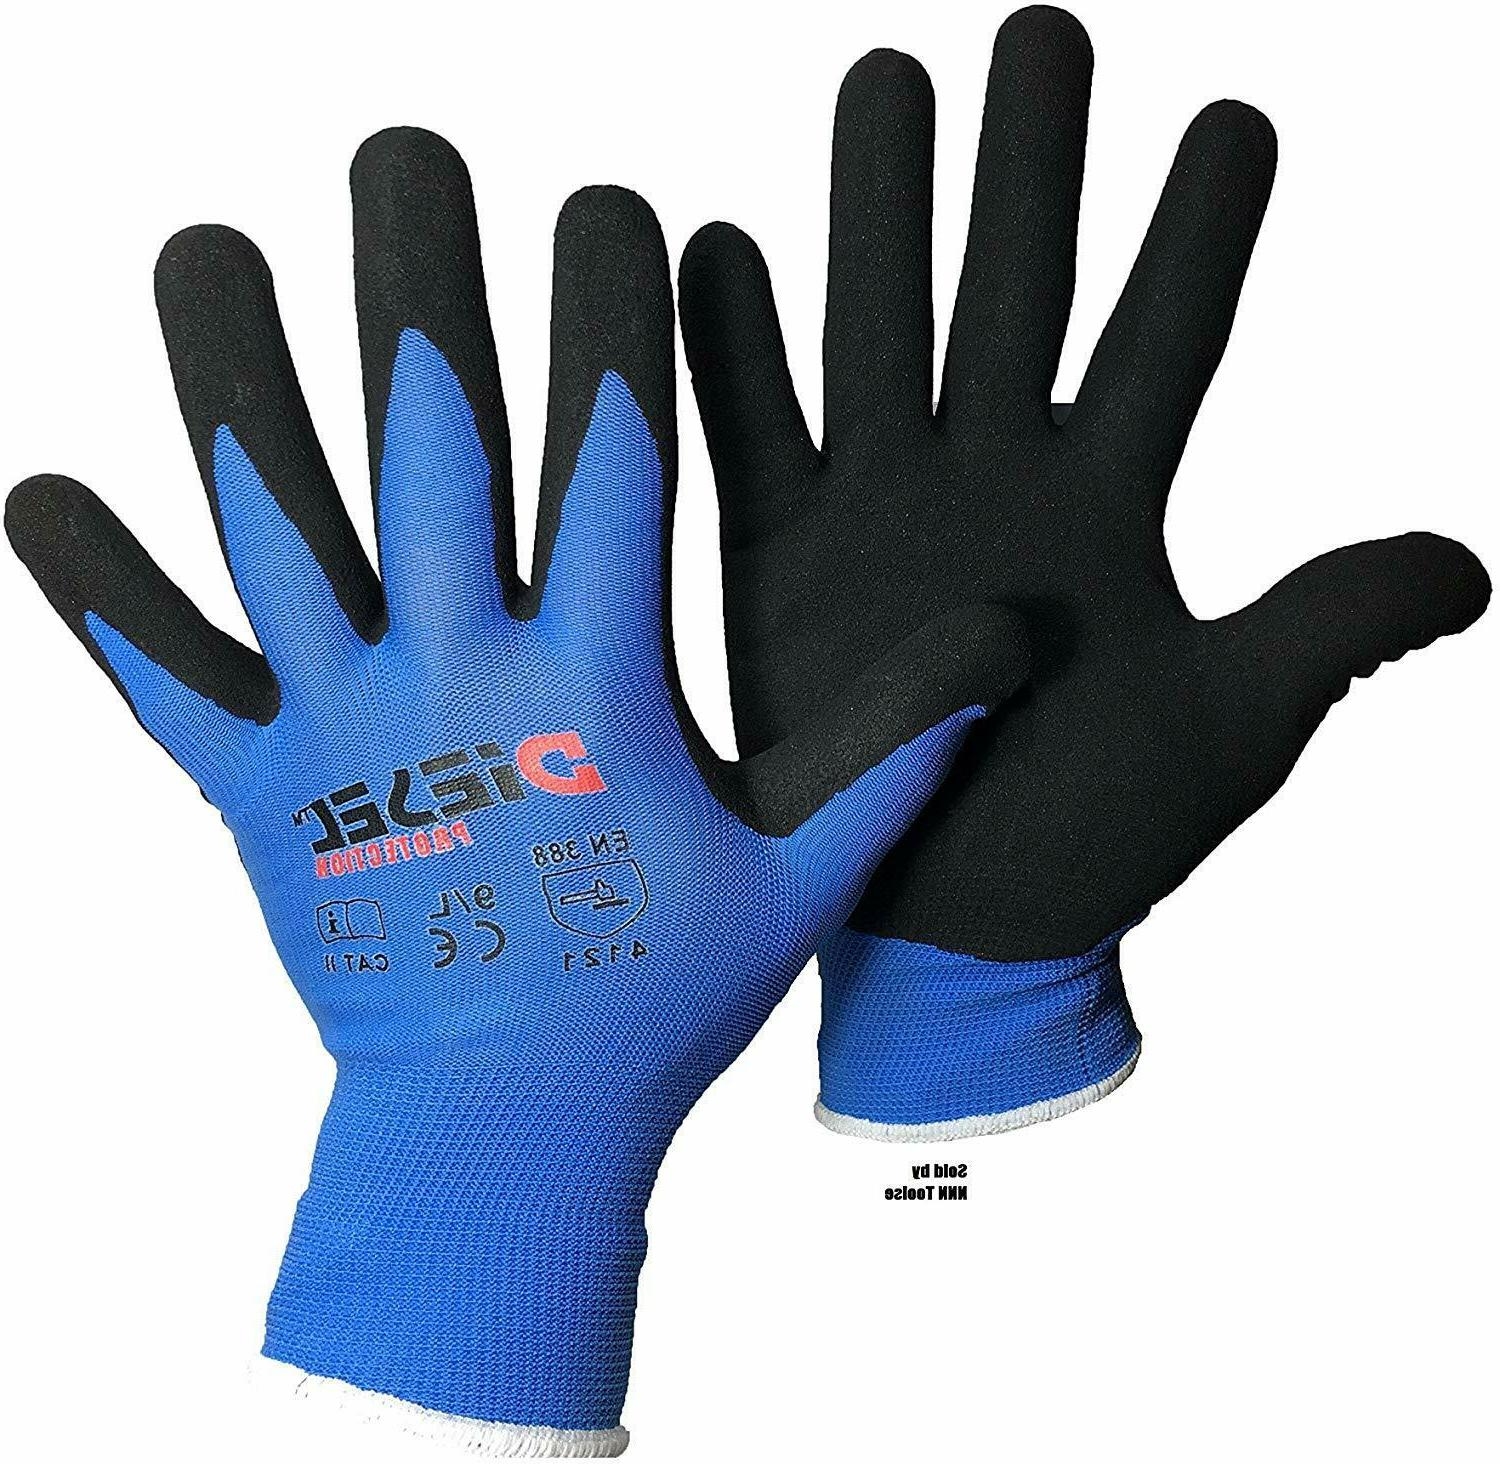 12 pair blue safety gloves latex coated